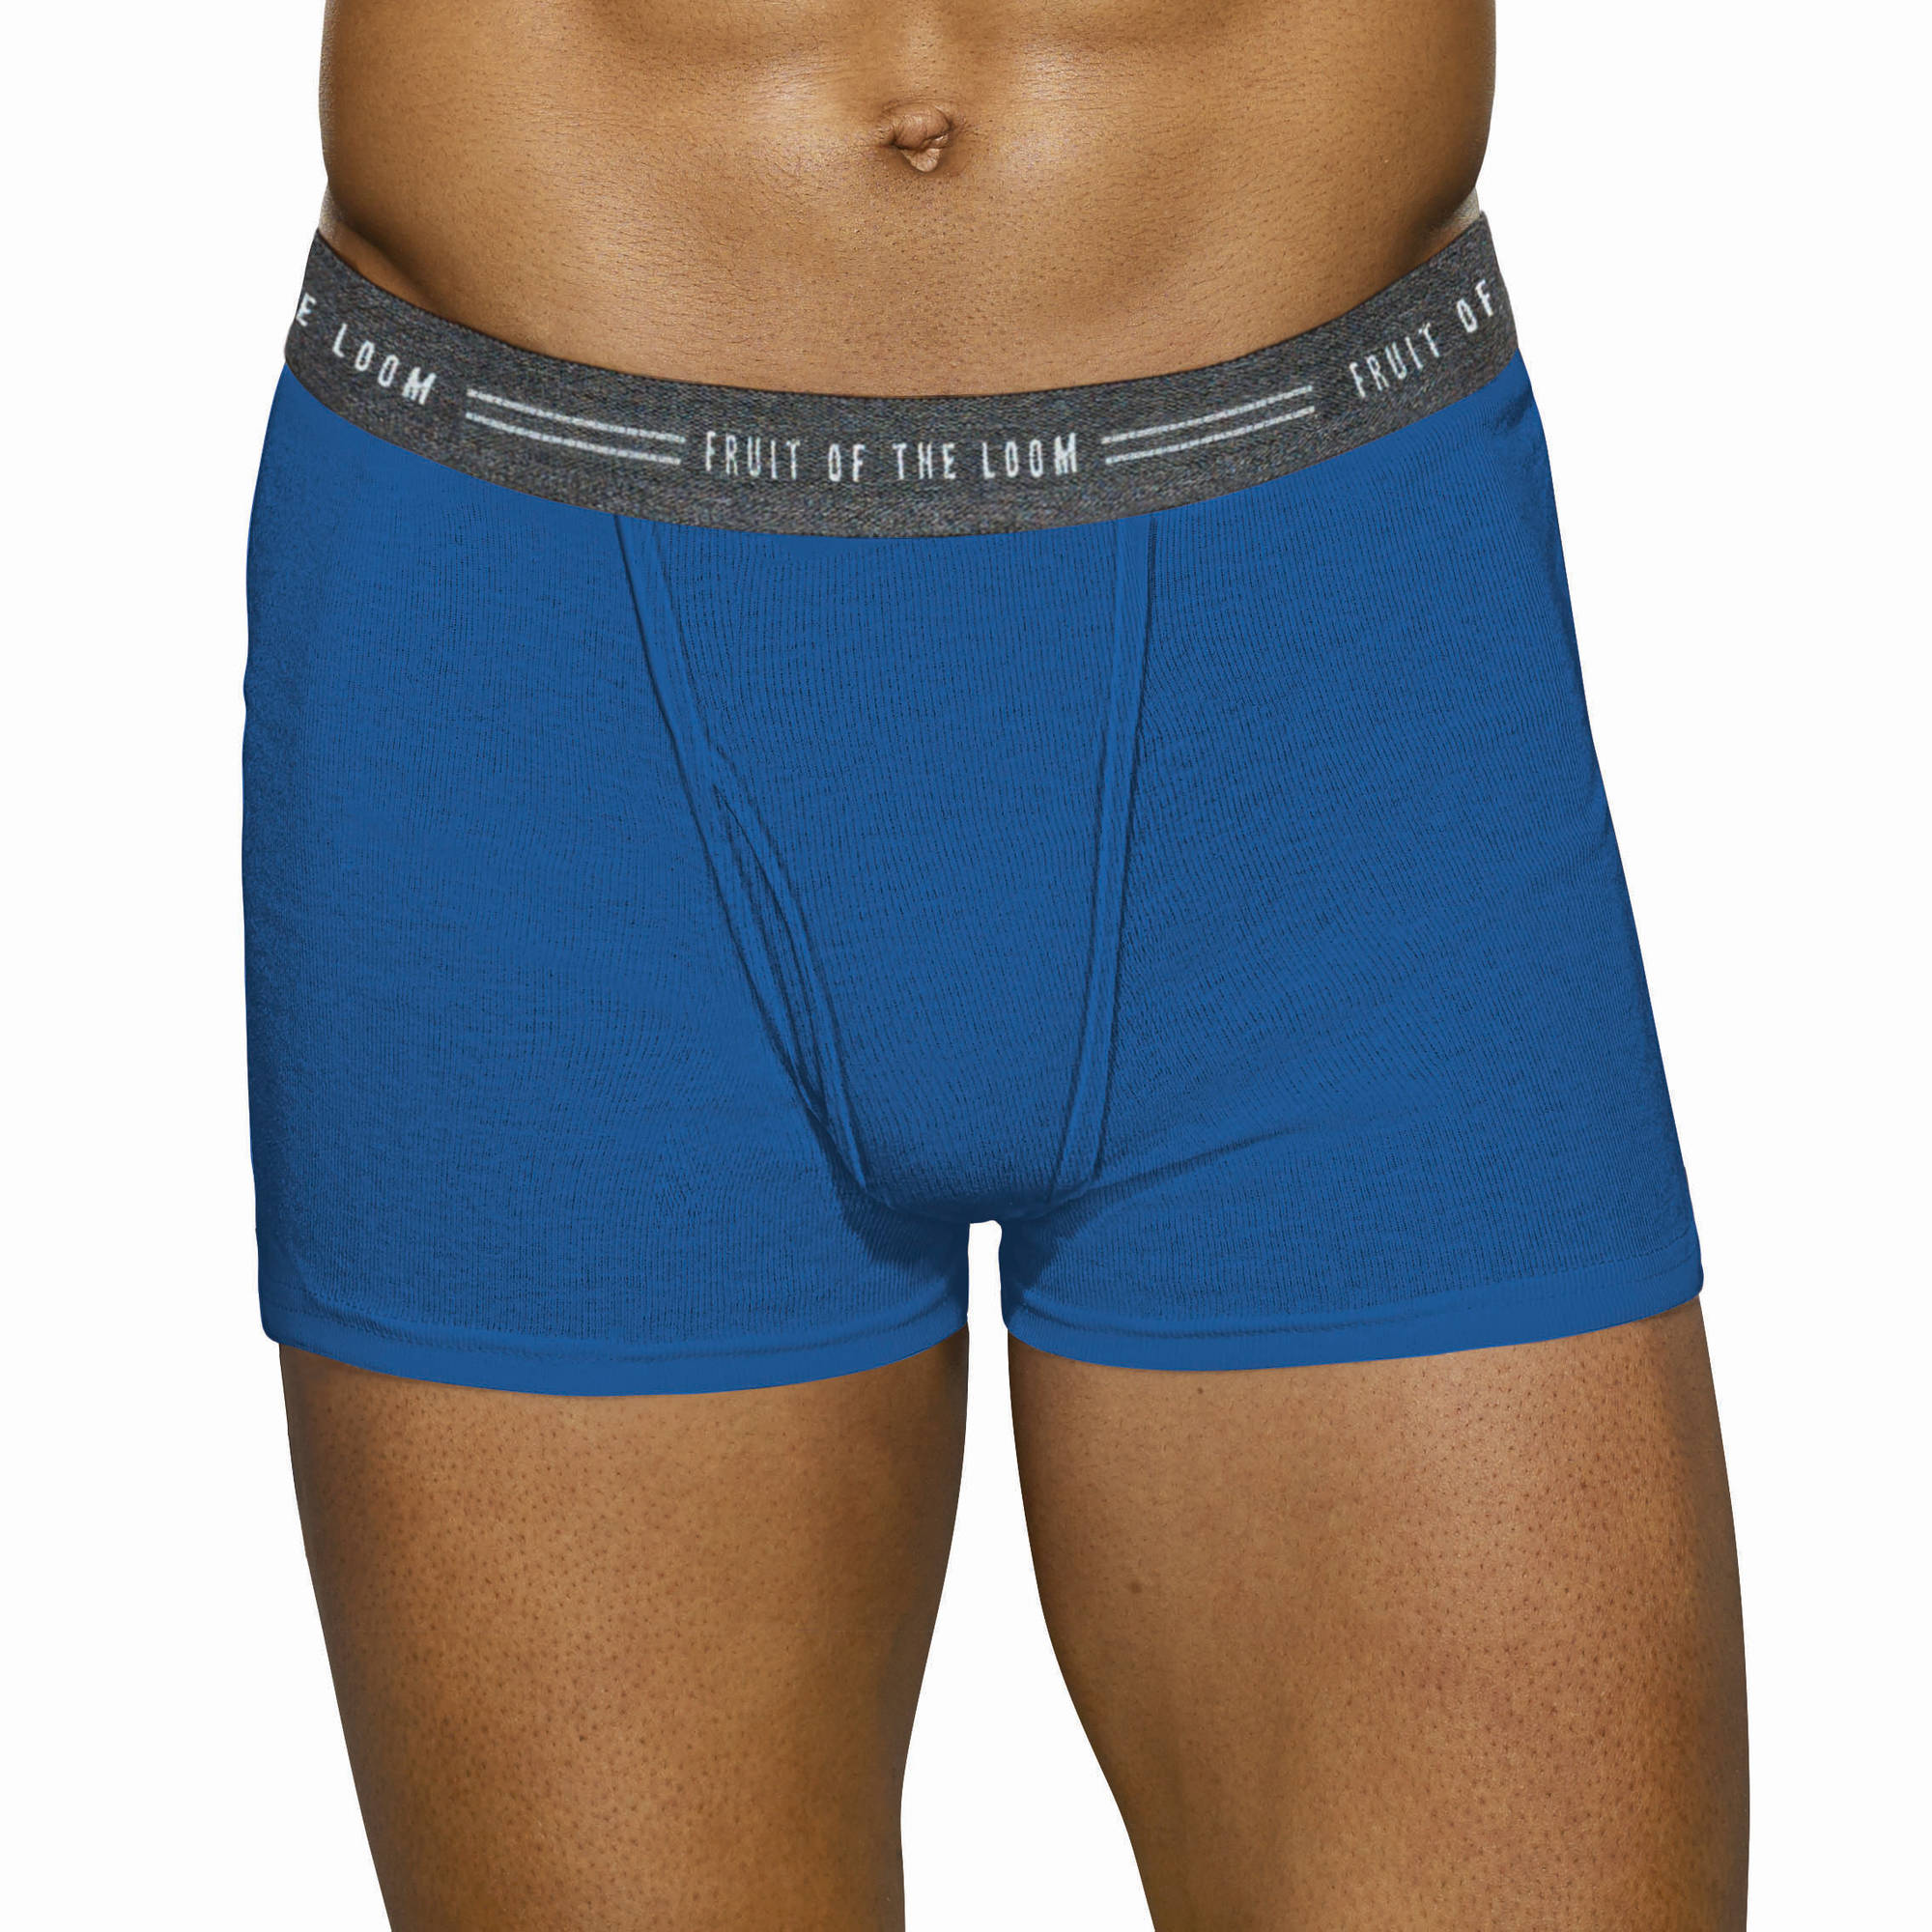 Fruit of the Loom Men's Everyday Active Briefs, 3-Pack